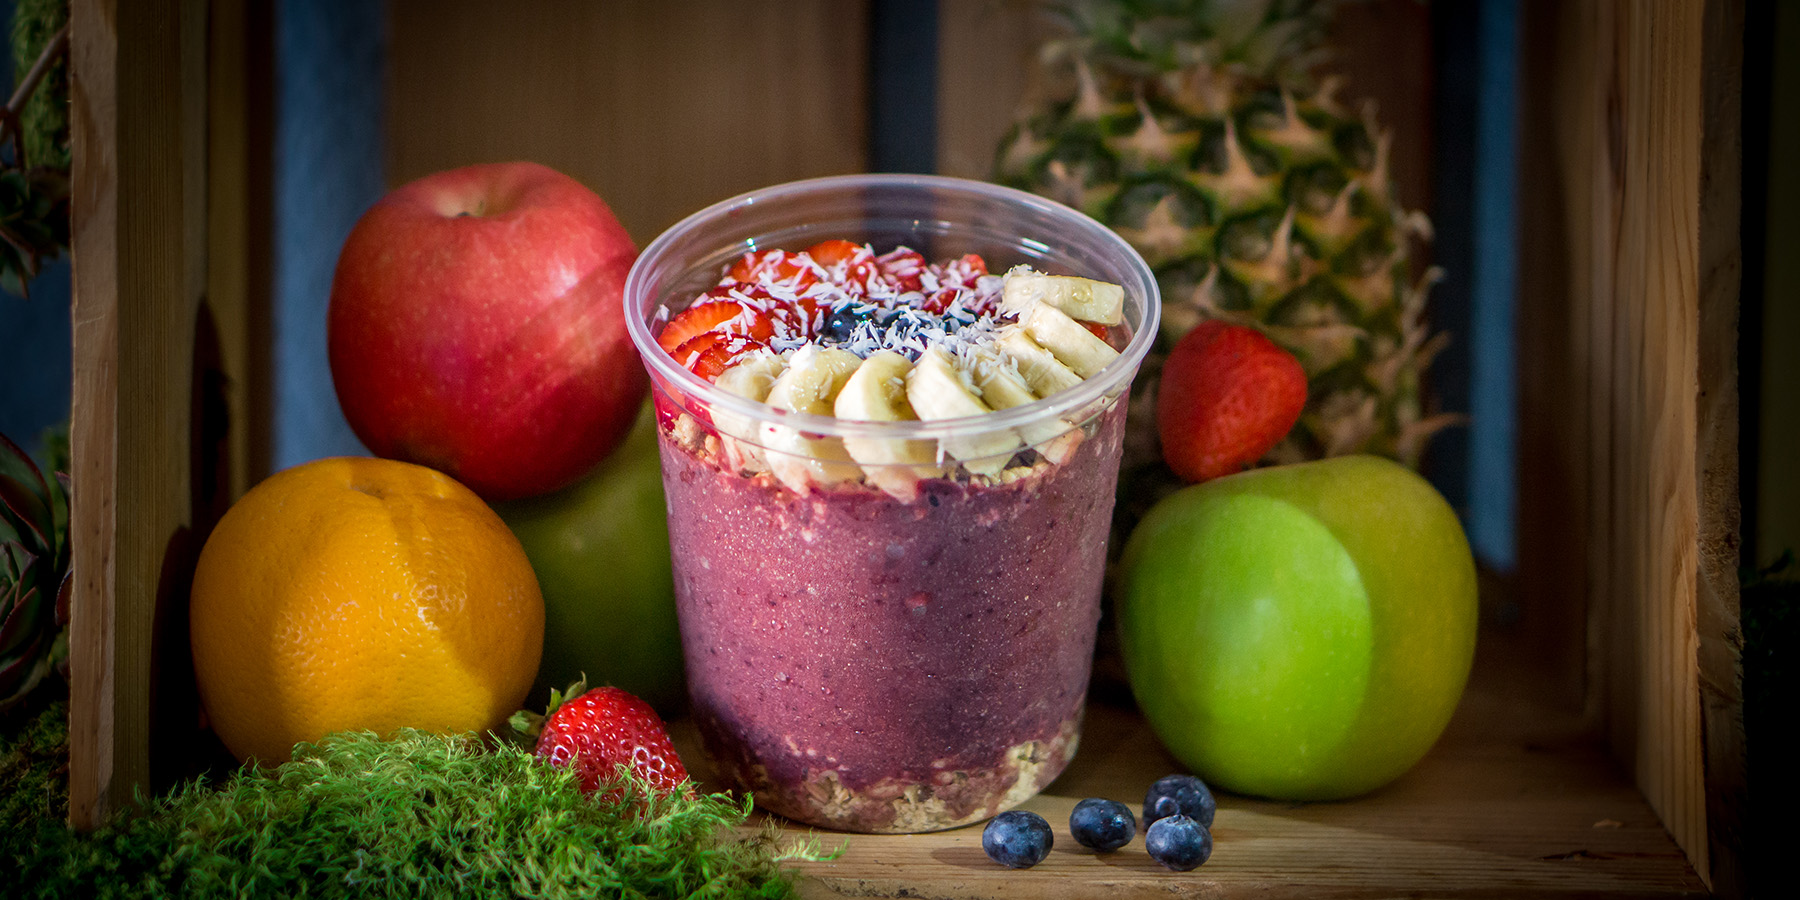 The Simply O Acai Bowl